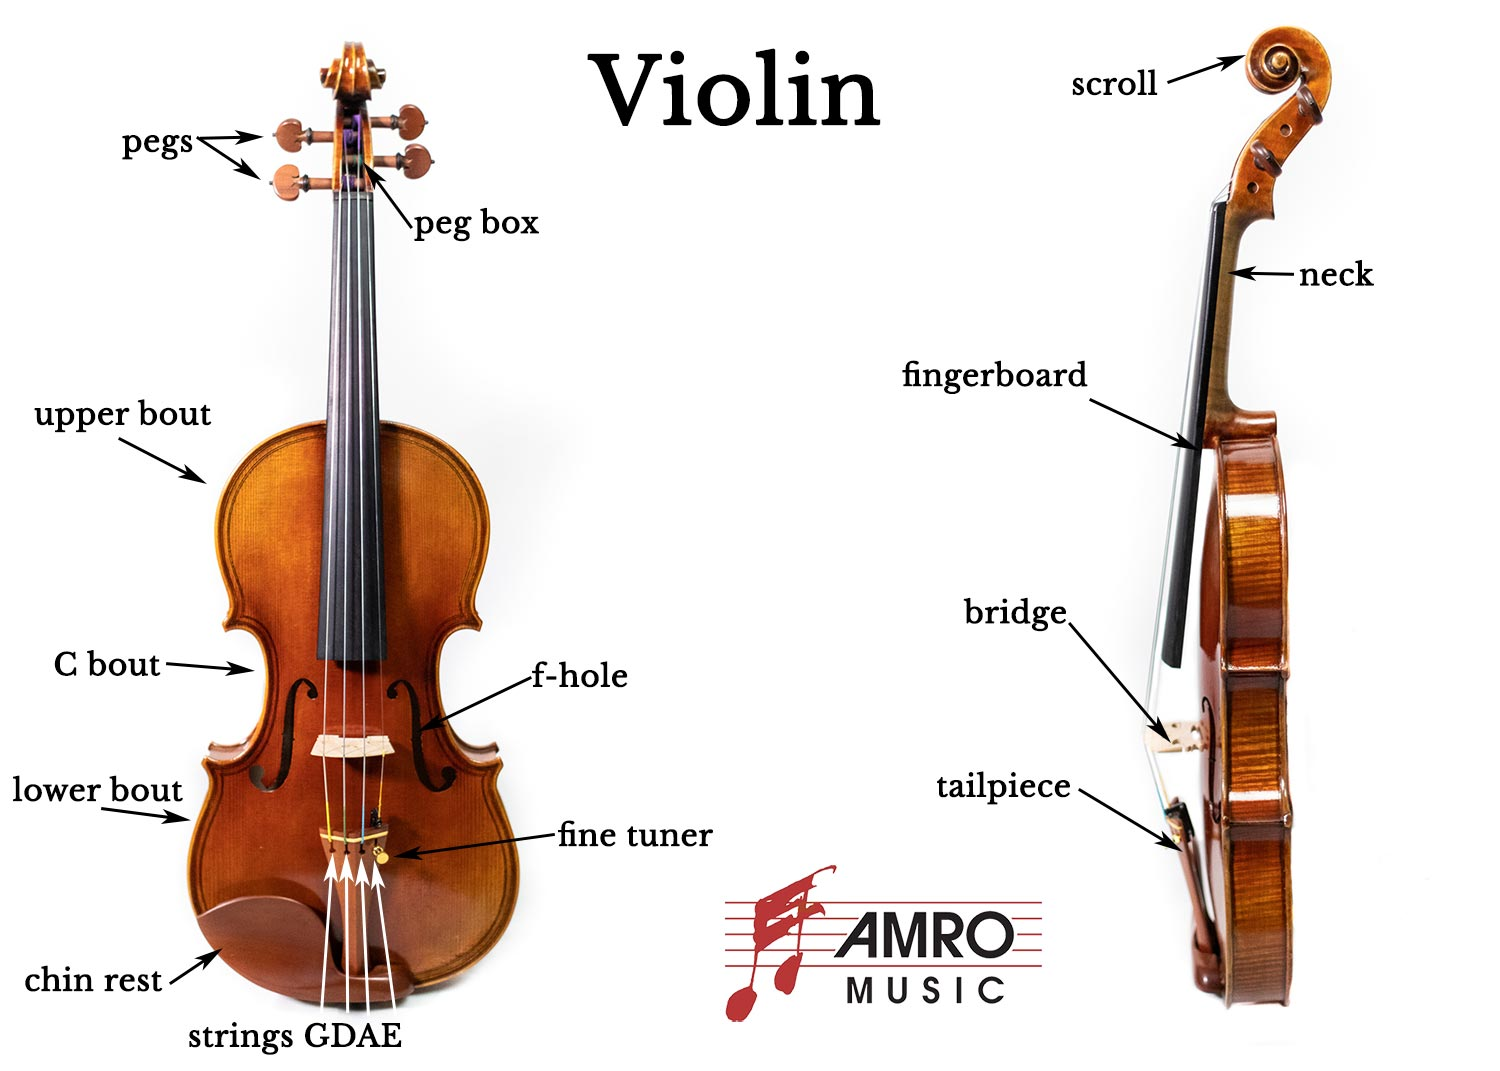 This illustration shows a violin from the front view on the left. It shows a side view in the center. A bow is illustrated on the right side of the image. On the front view of the violin, the scroll, peg, and chin rest are labeled. On the side view, the neck, top, bridge, tail piece, and end pin are labeled. On the bow illustration, the adjustment screw, frog, hair, and bow tip are labeled